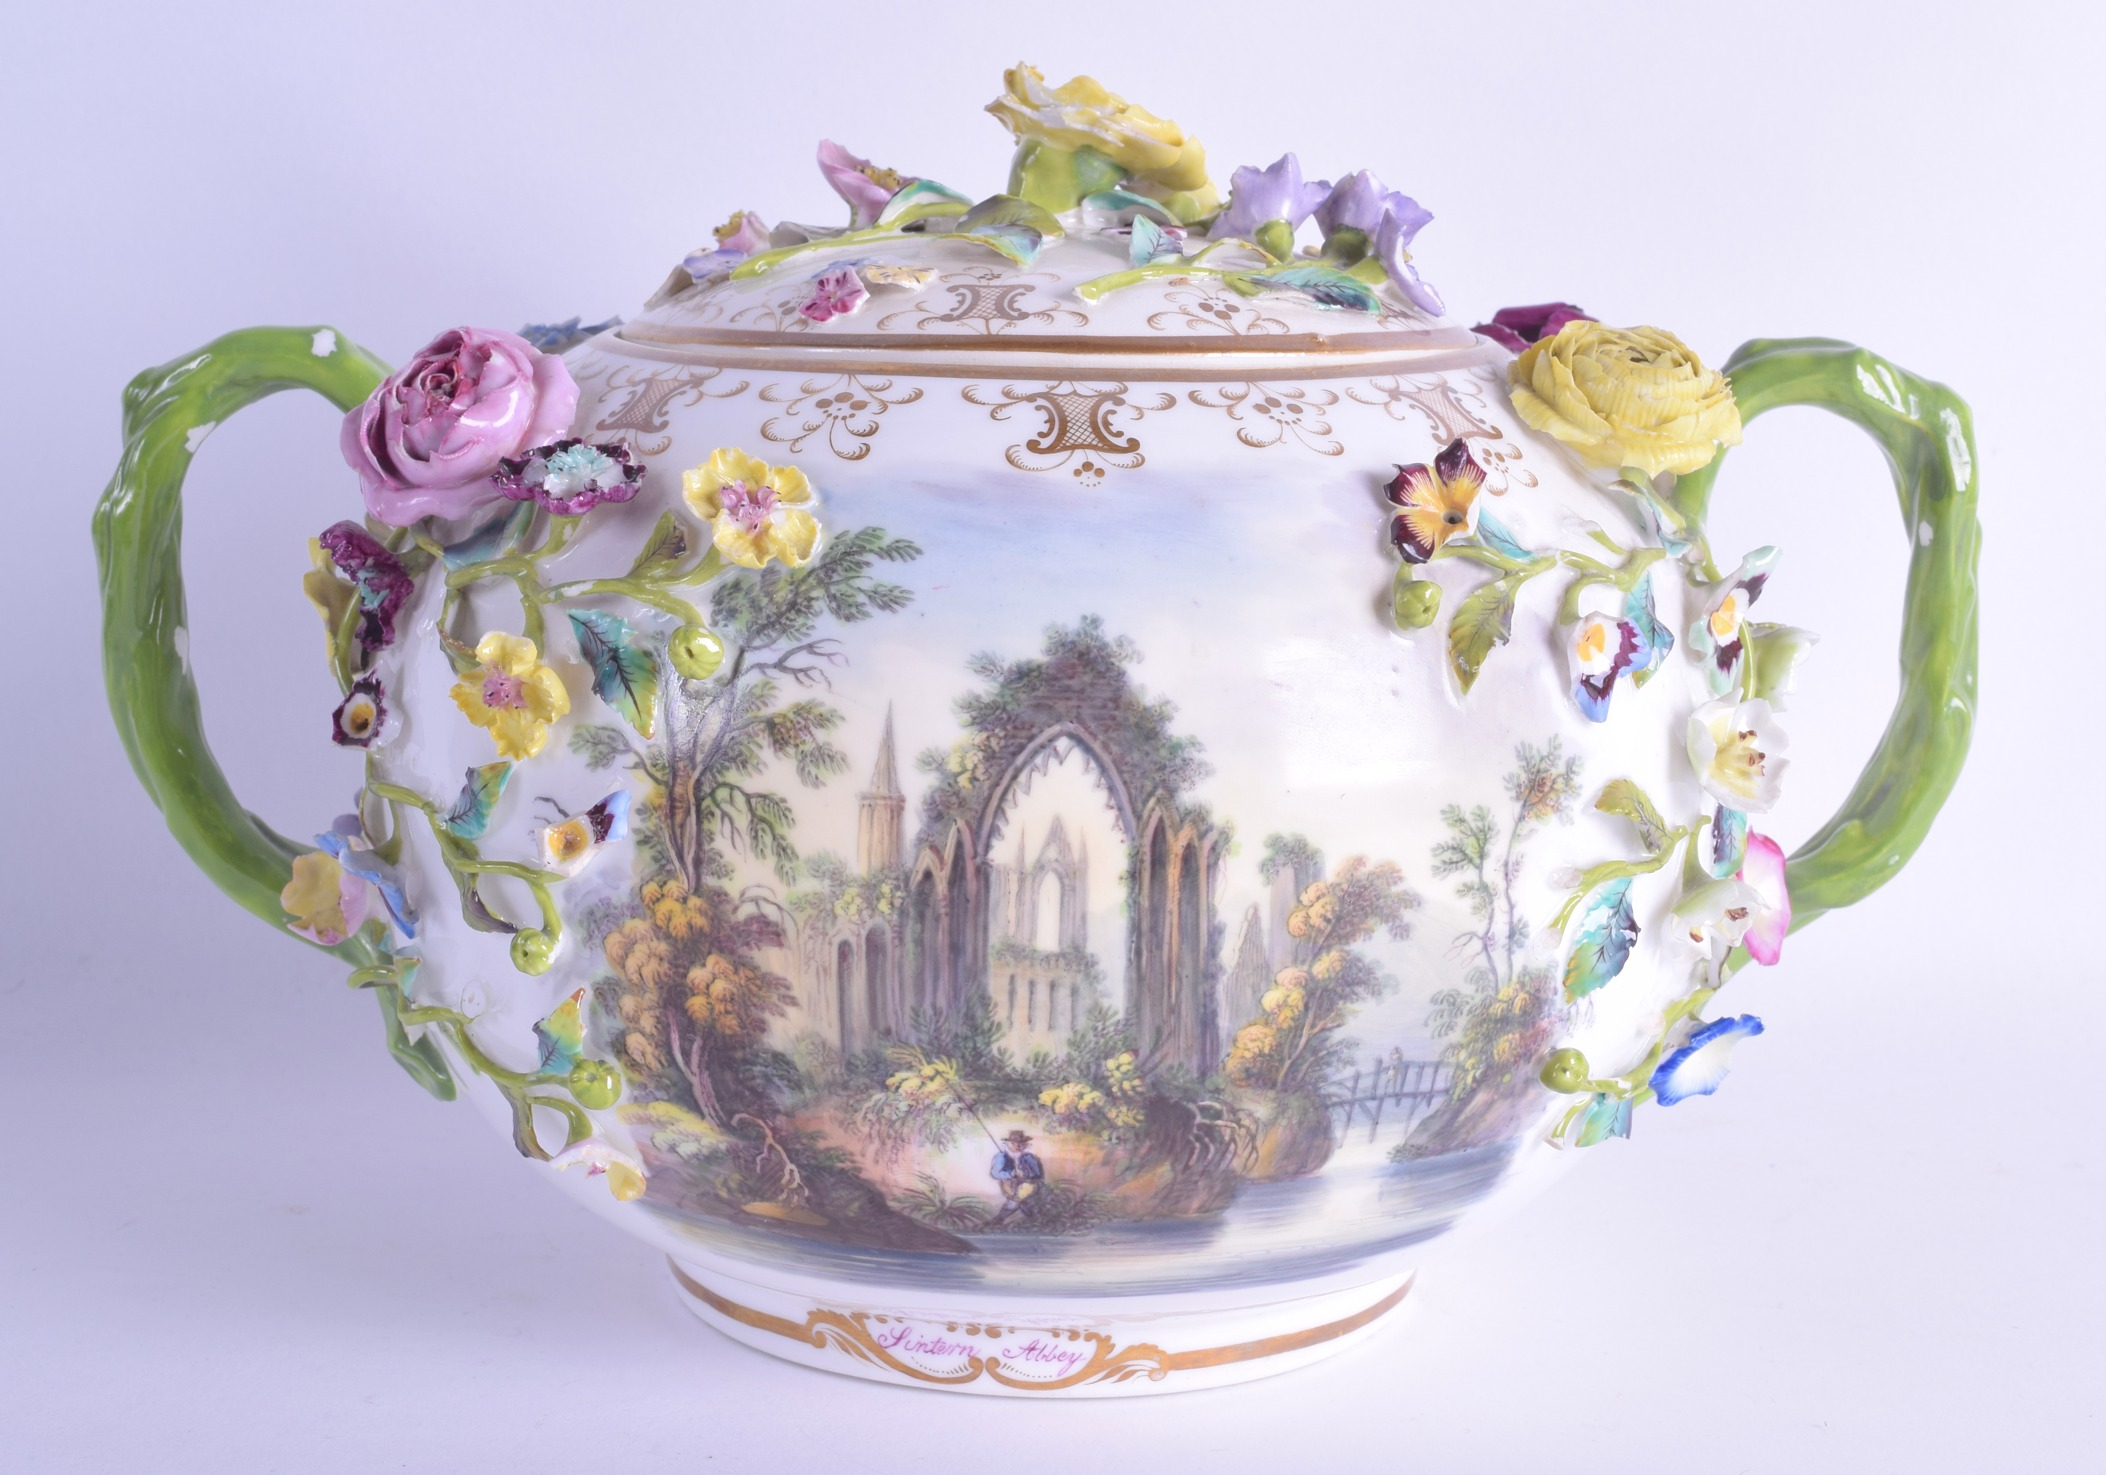 Lot 97 - A LARGE MID 19TH CENTURY MINTON ENCRUSTED TWIN HANDLED BOWL AND COVER painted with landscapes and